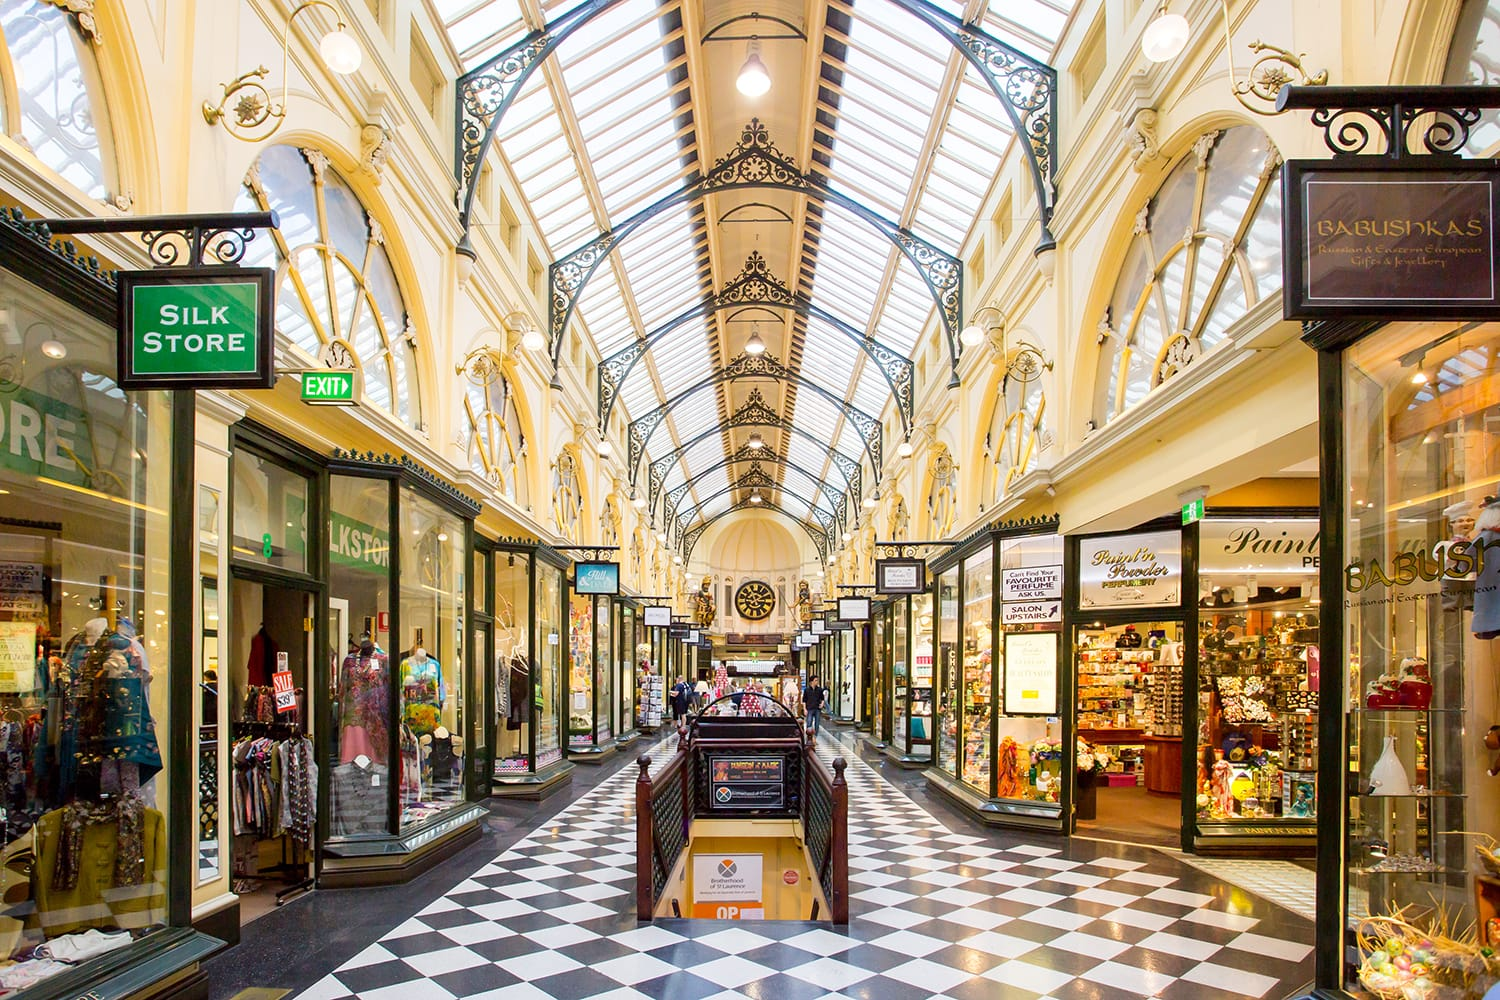 Melbourne's famous Royal Arcade shopping centre during the day with shoppers.